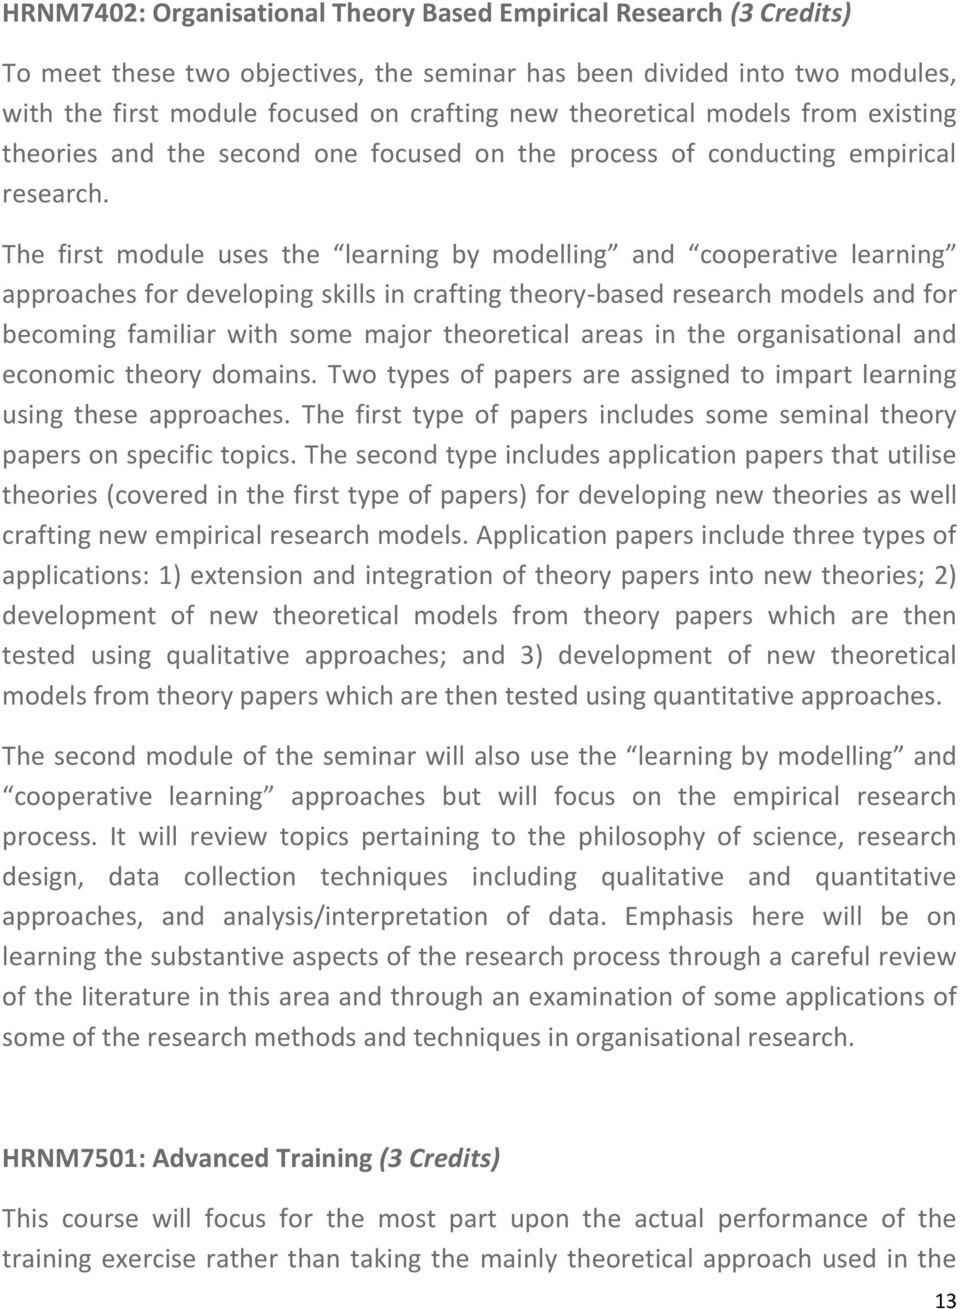 The first module uses the learning by modelling and cooperative learning approaches for developing skills in crafting theory-based research models and for becoming familiar with some major